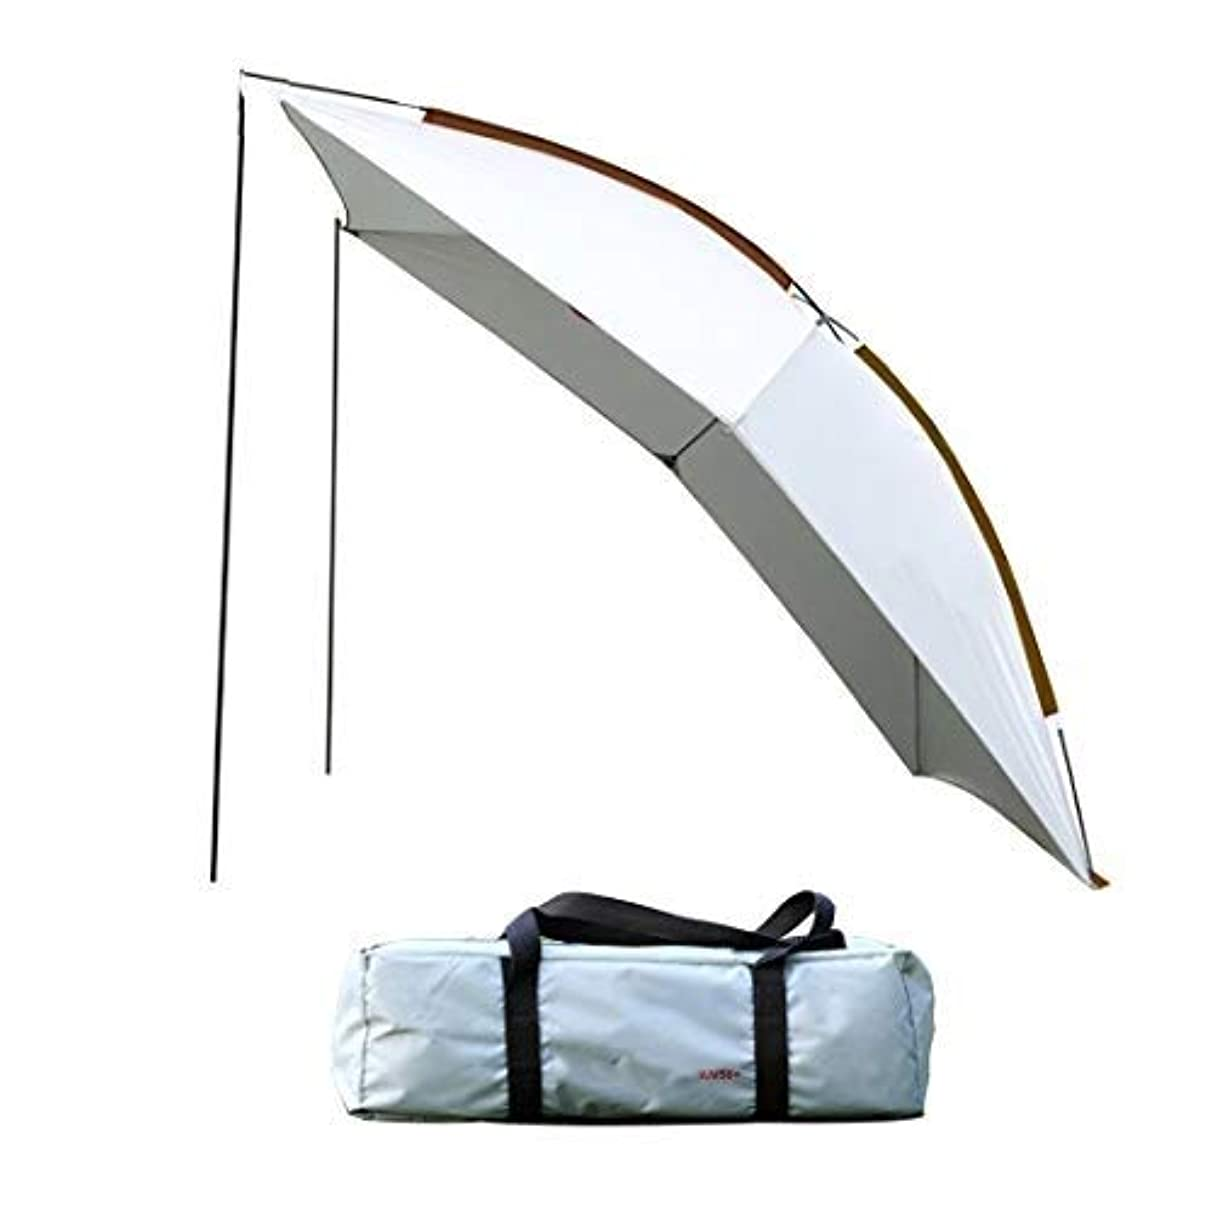 HKTK Awning Outdoor Car Awning/Camping Pergola, Large Event Tent, Portable Sun Shelter with Sun Protection - for Beach, Carport and Barbecue (Color : Grey)